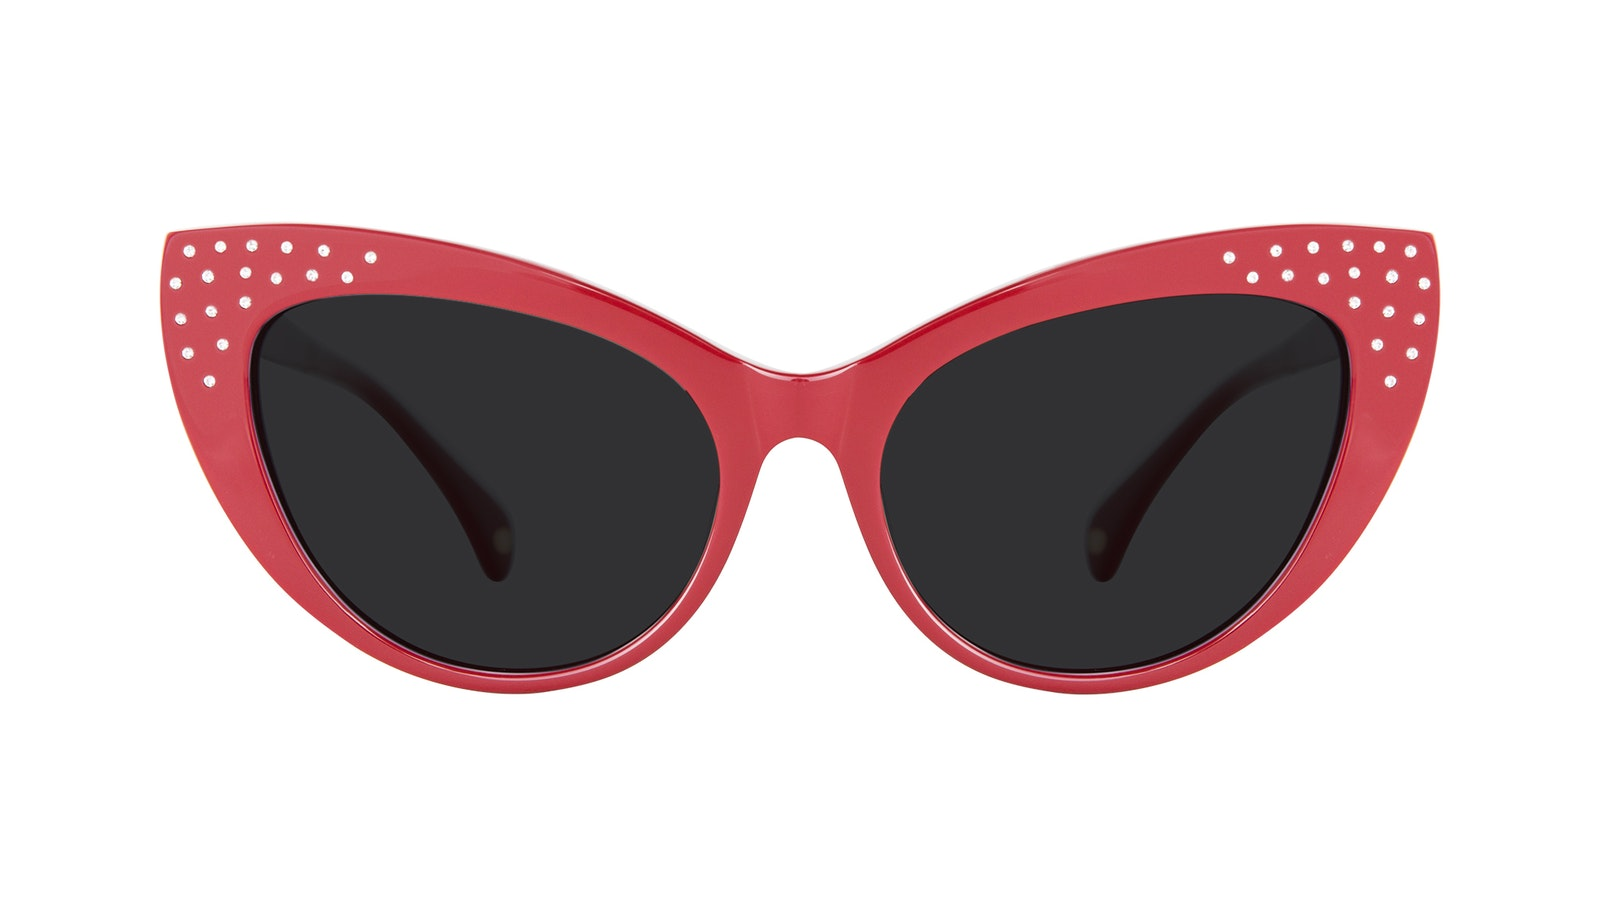 Affordable Fashion Glasses Cat Eye Sunglasses Women Keiko Amanda Red